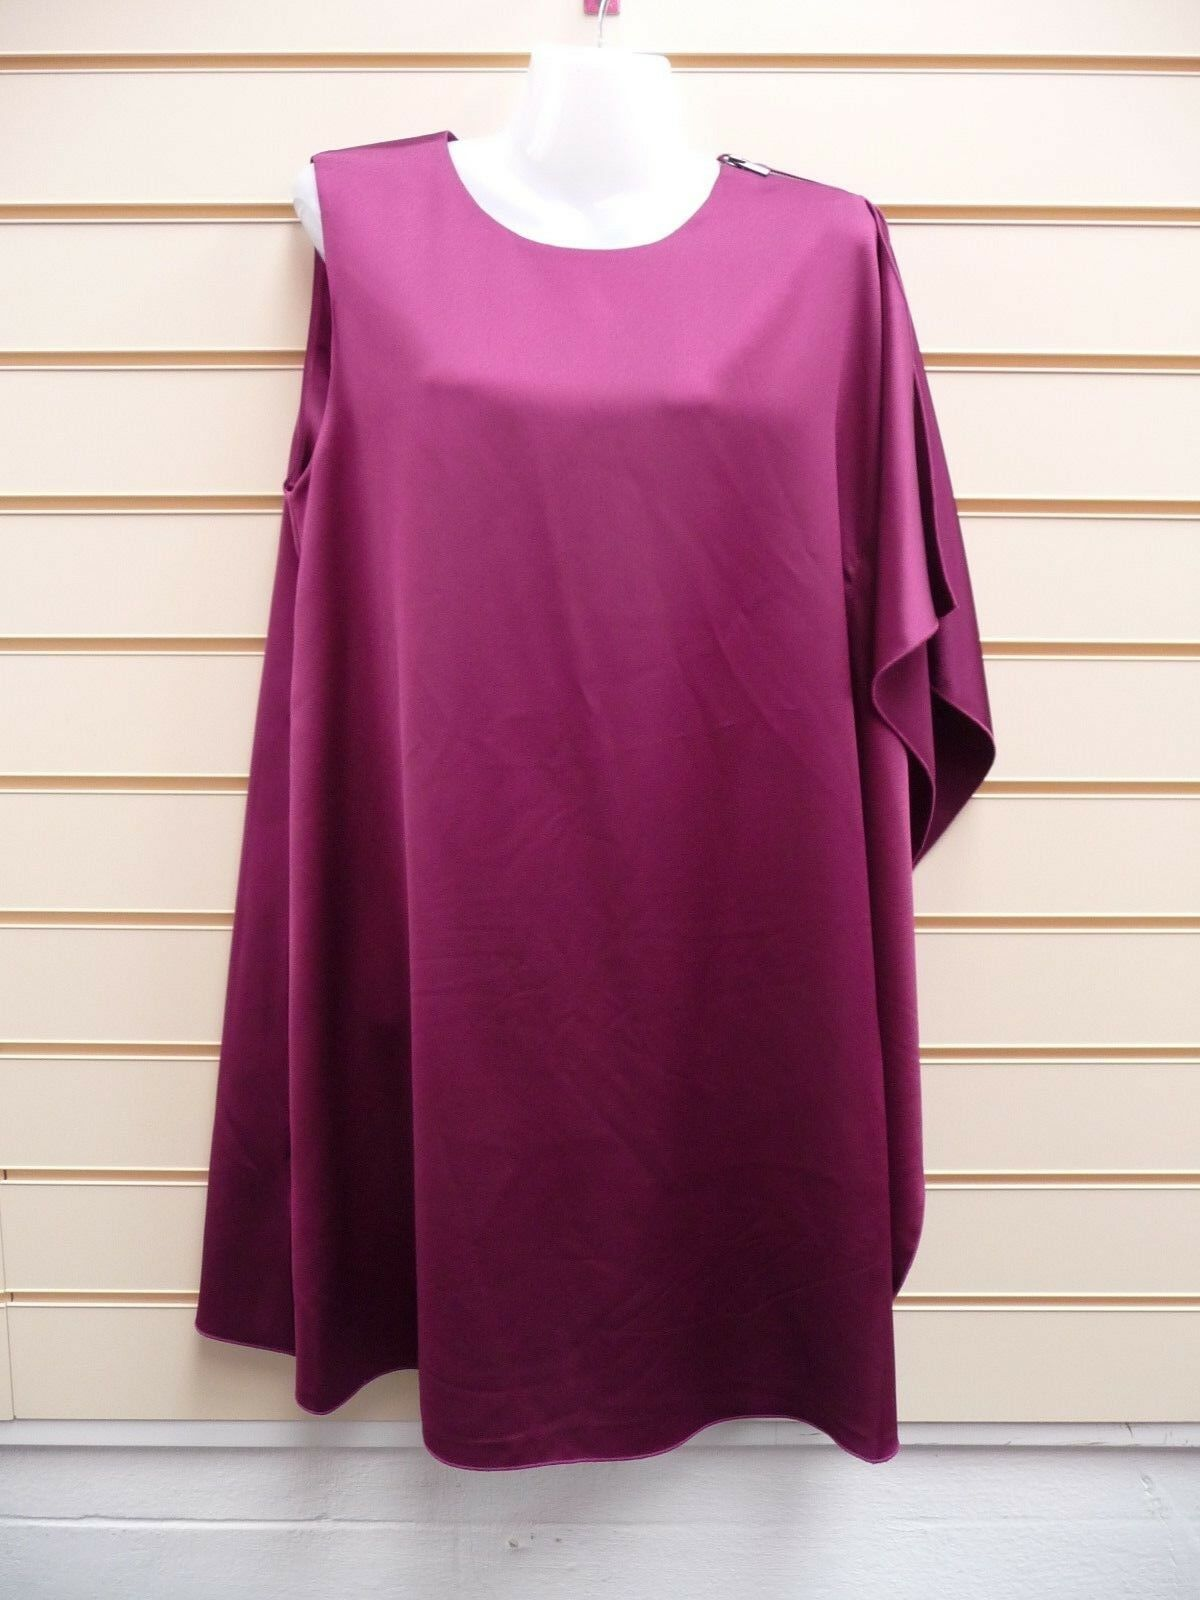 FRENCH COLLECTION DRESS SIZE12,14 DARK MAGENTA PARTY    BNWT   (A001